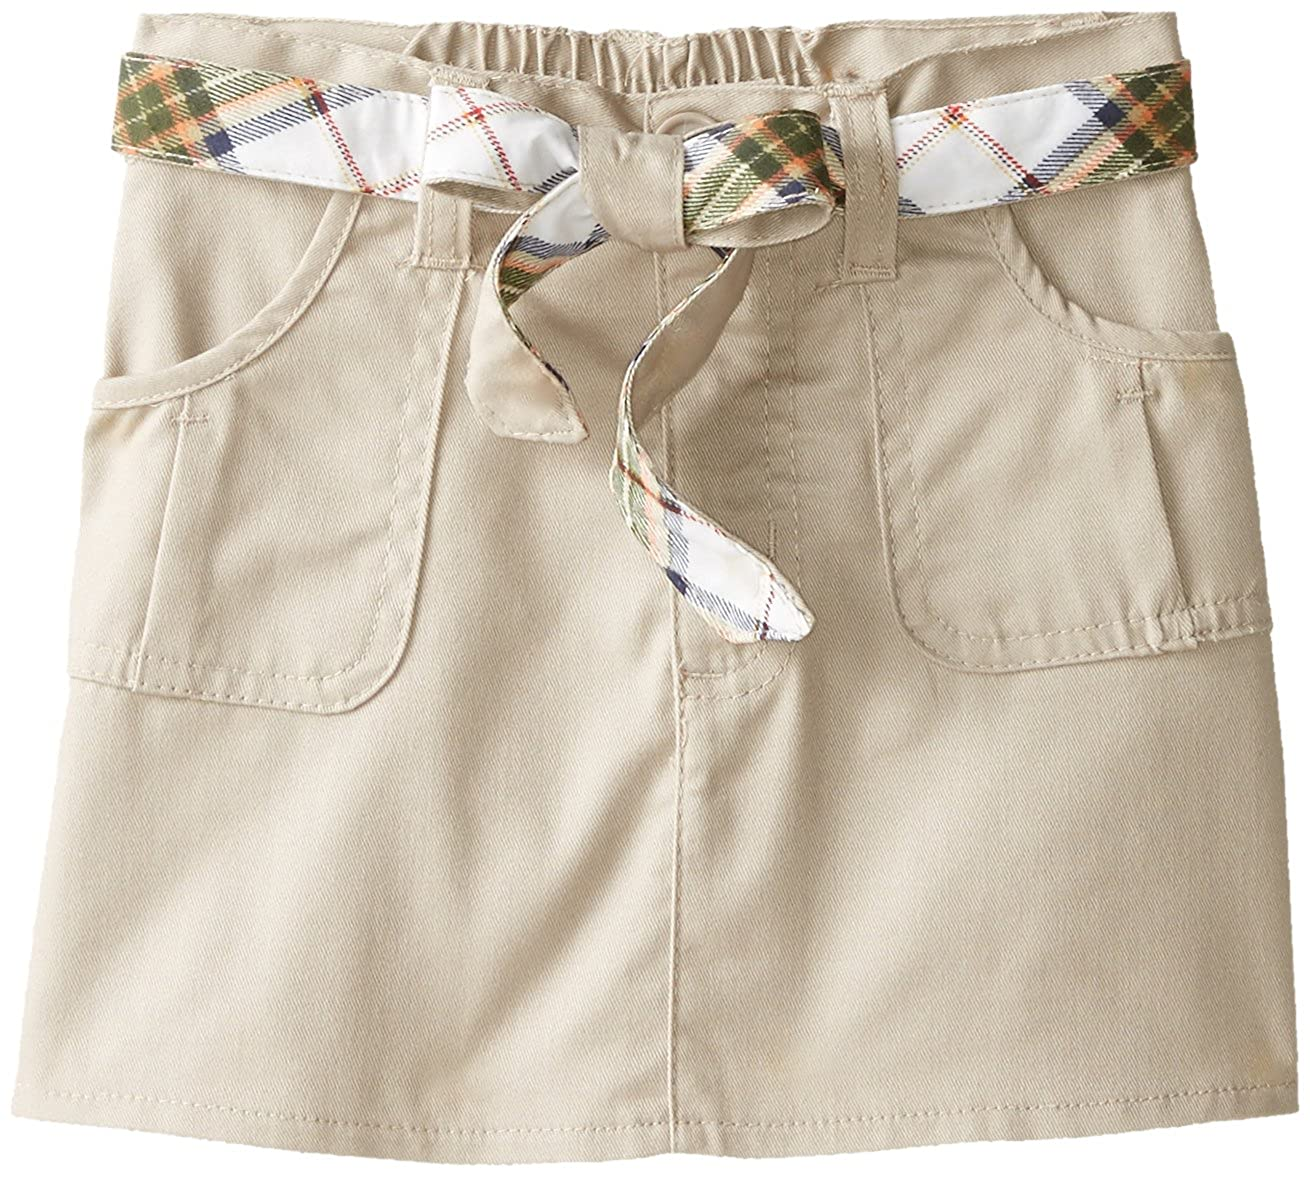 Eddie Bauer School Uniform Girls Scooter, Belted Khaki, 5 CZ84